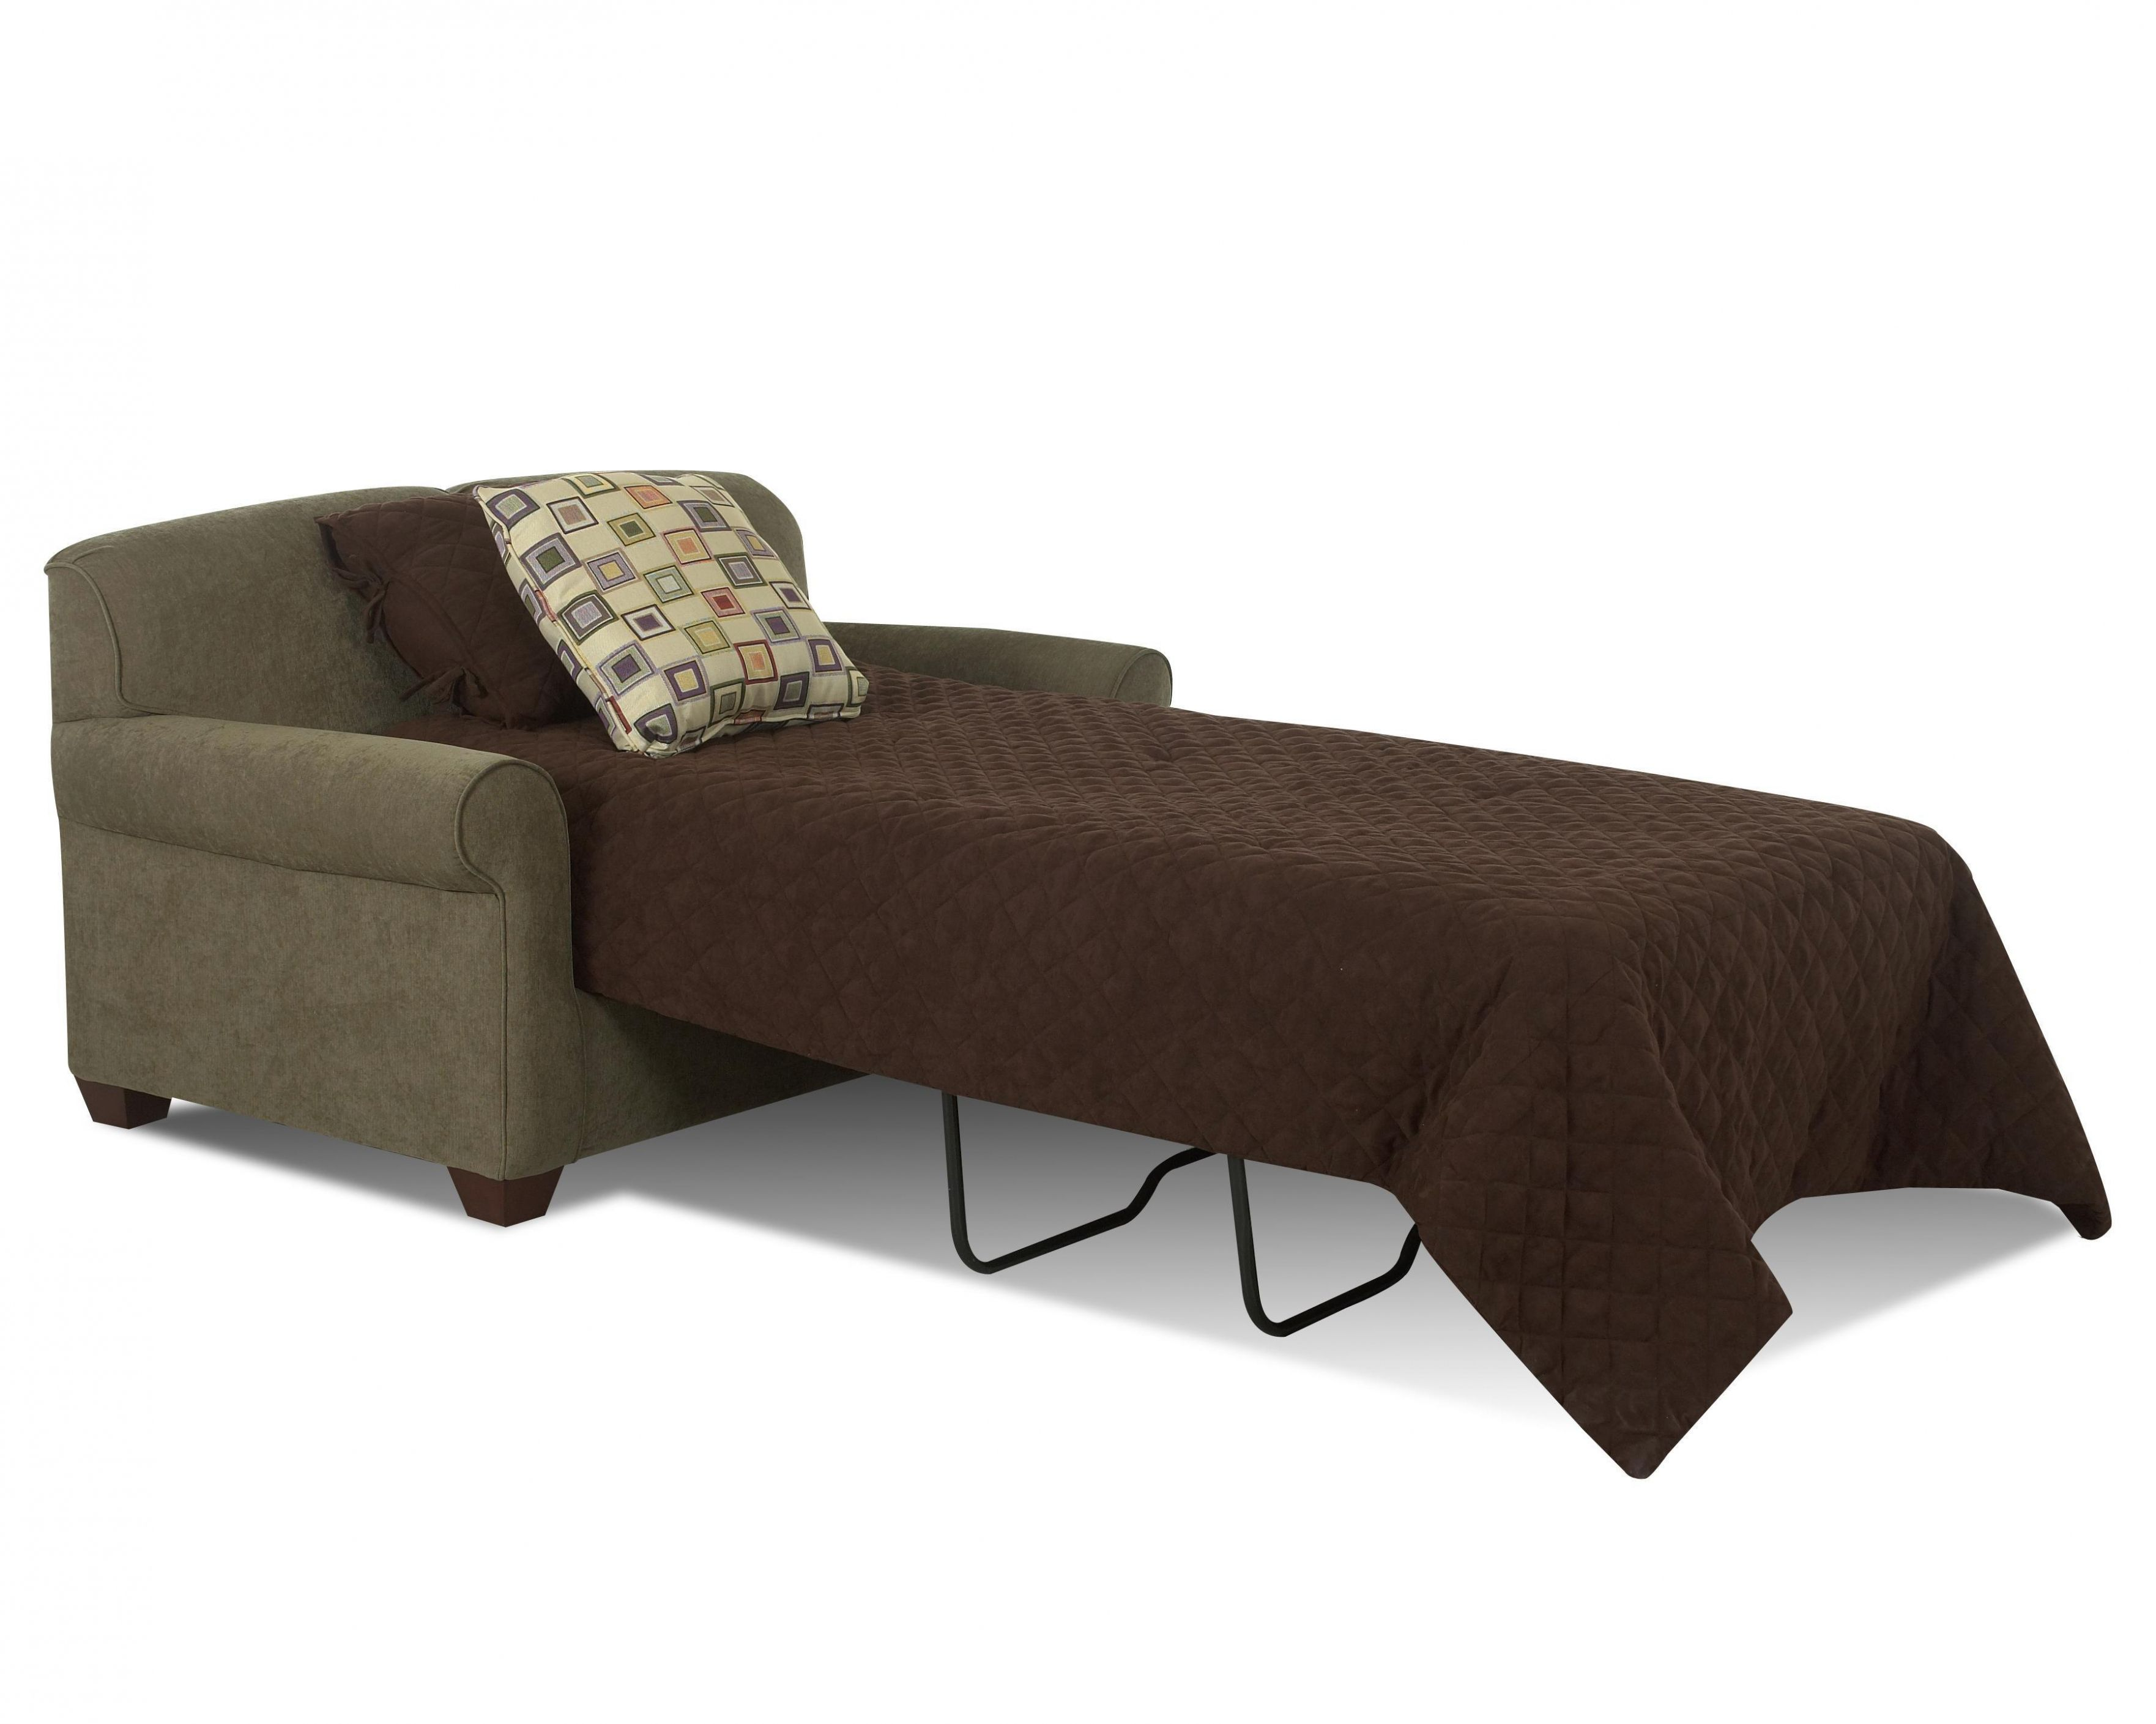 Loveseat Hide A Bed Hidden Bed Bed Interior Love Seat